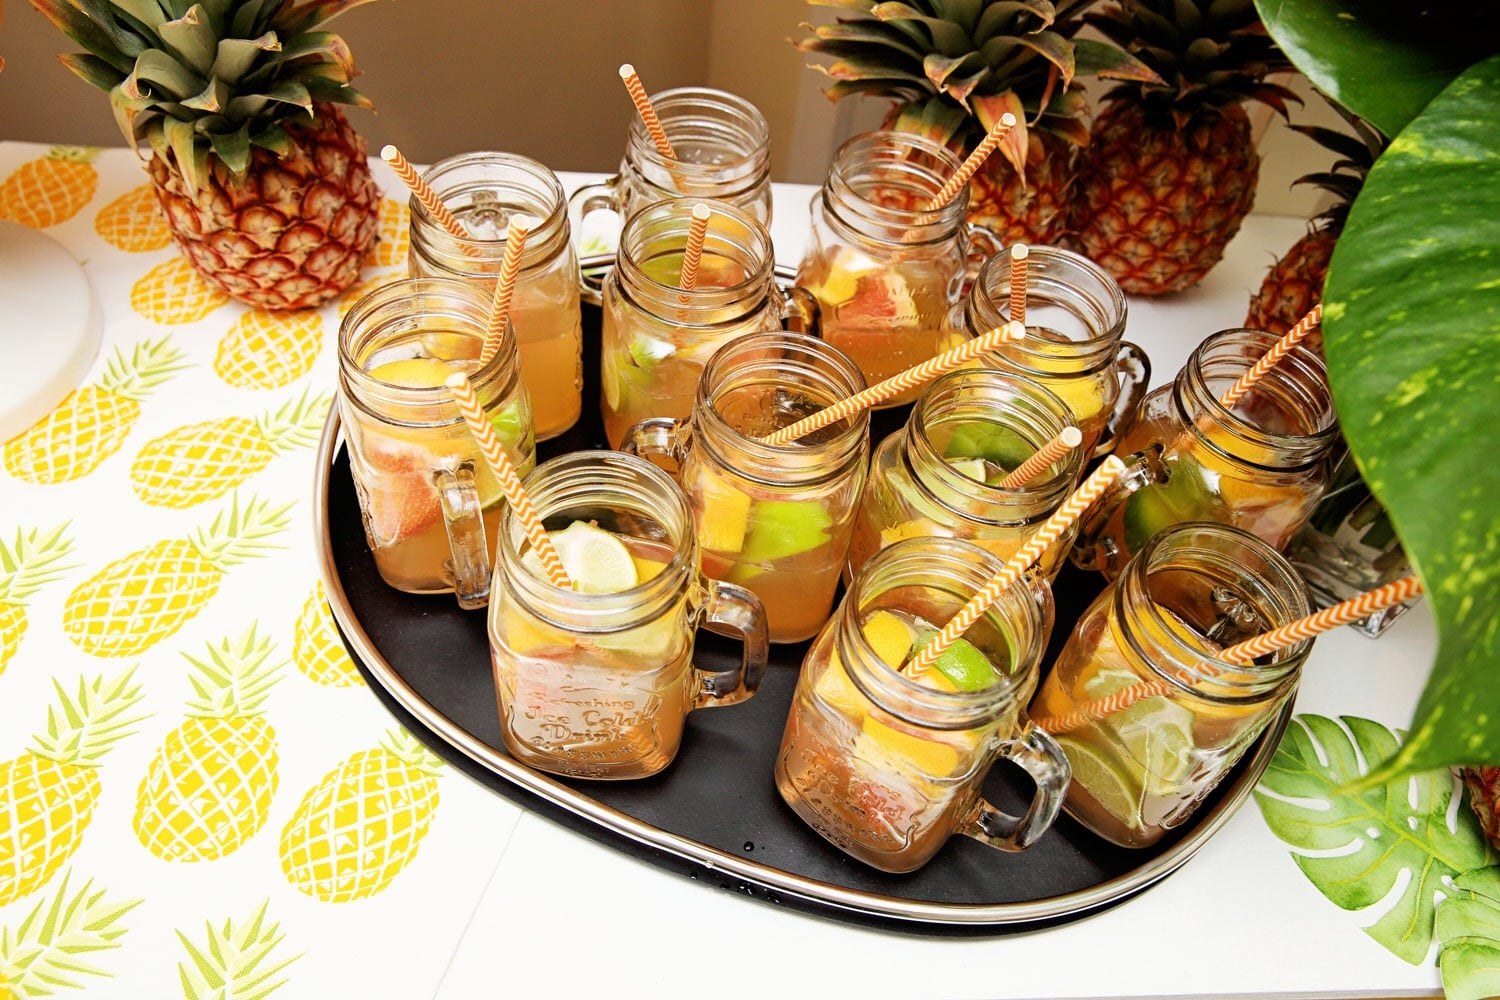 Pink lemonade with grapefruit and lime wedges